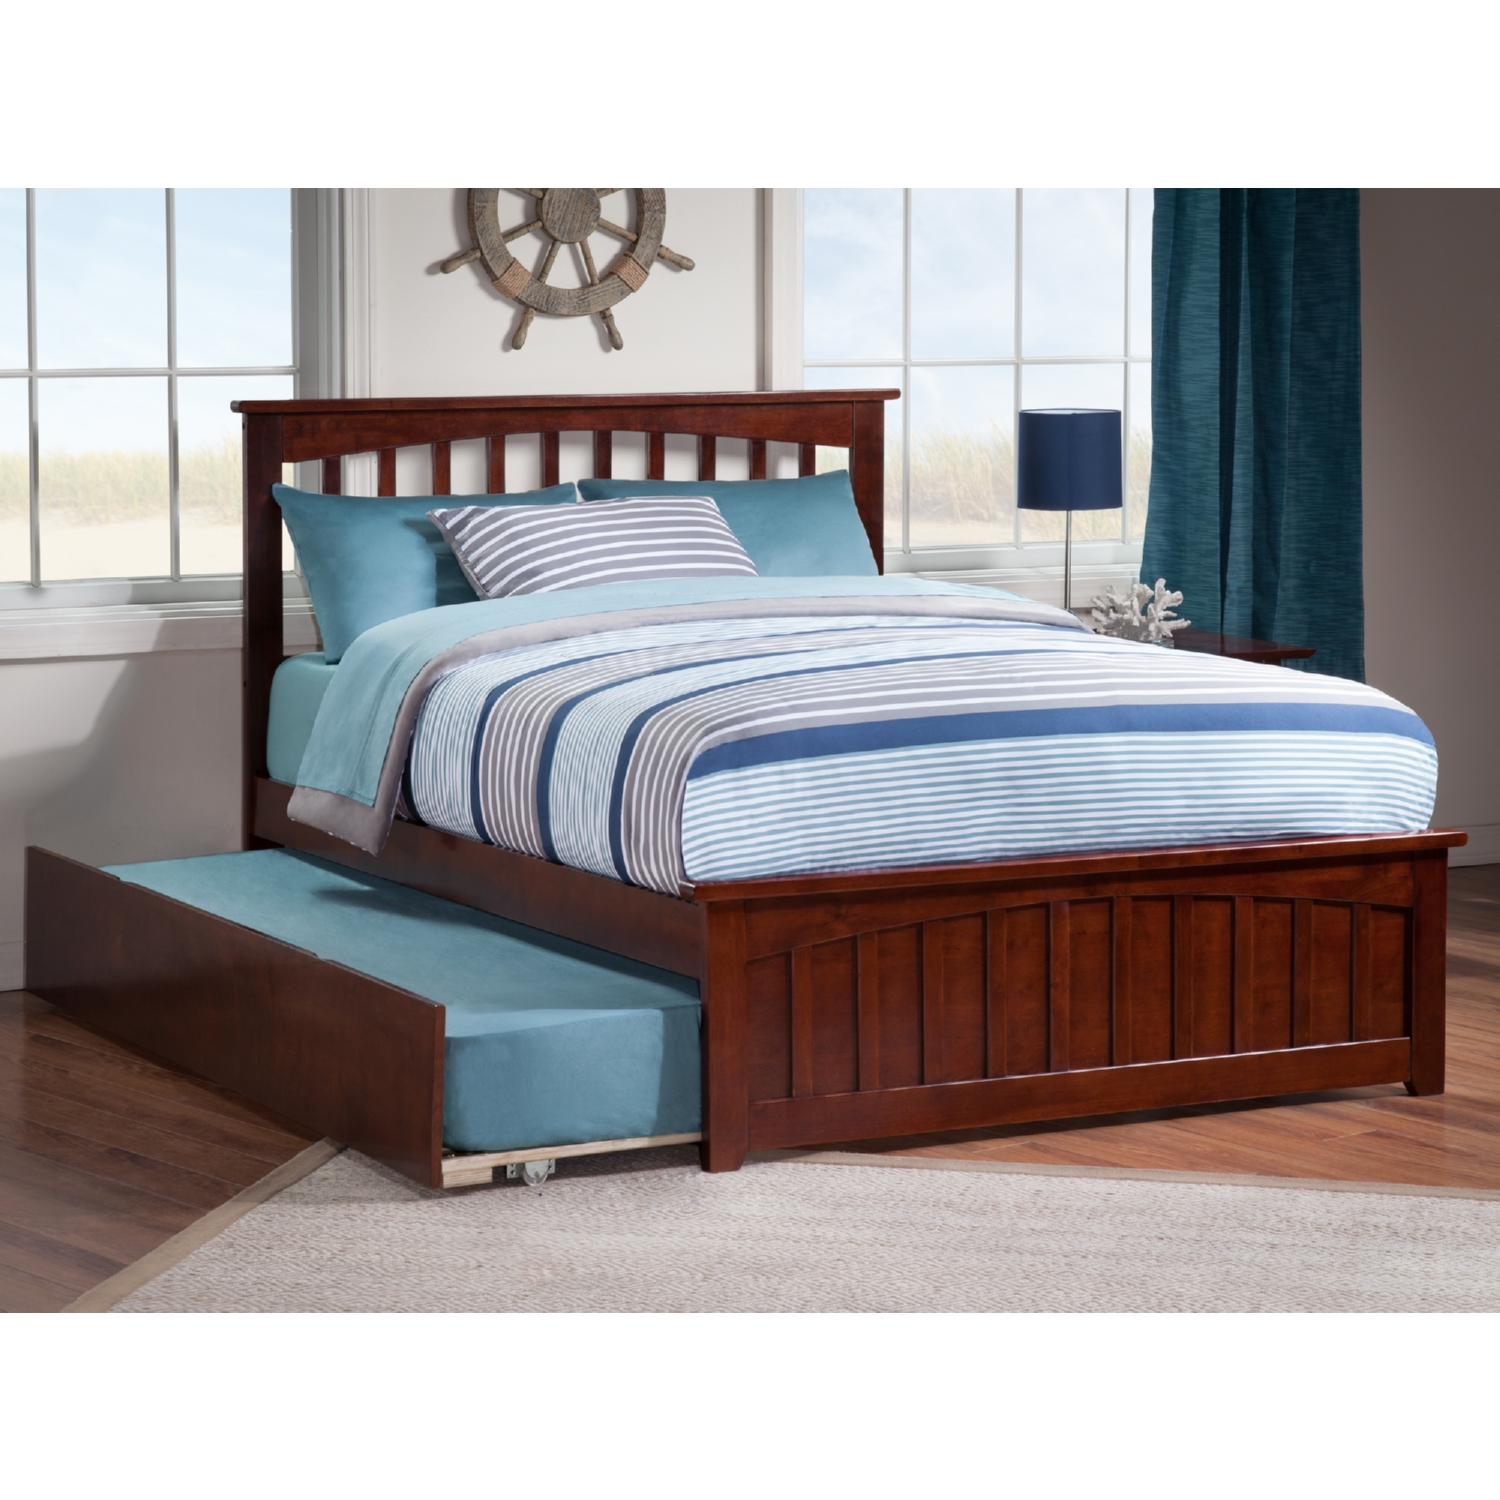 Atlantic furniture ar8736014 mission full bed w matching for Urban home beds